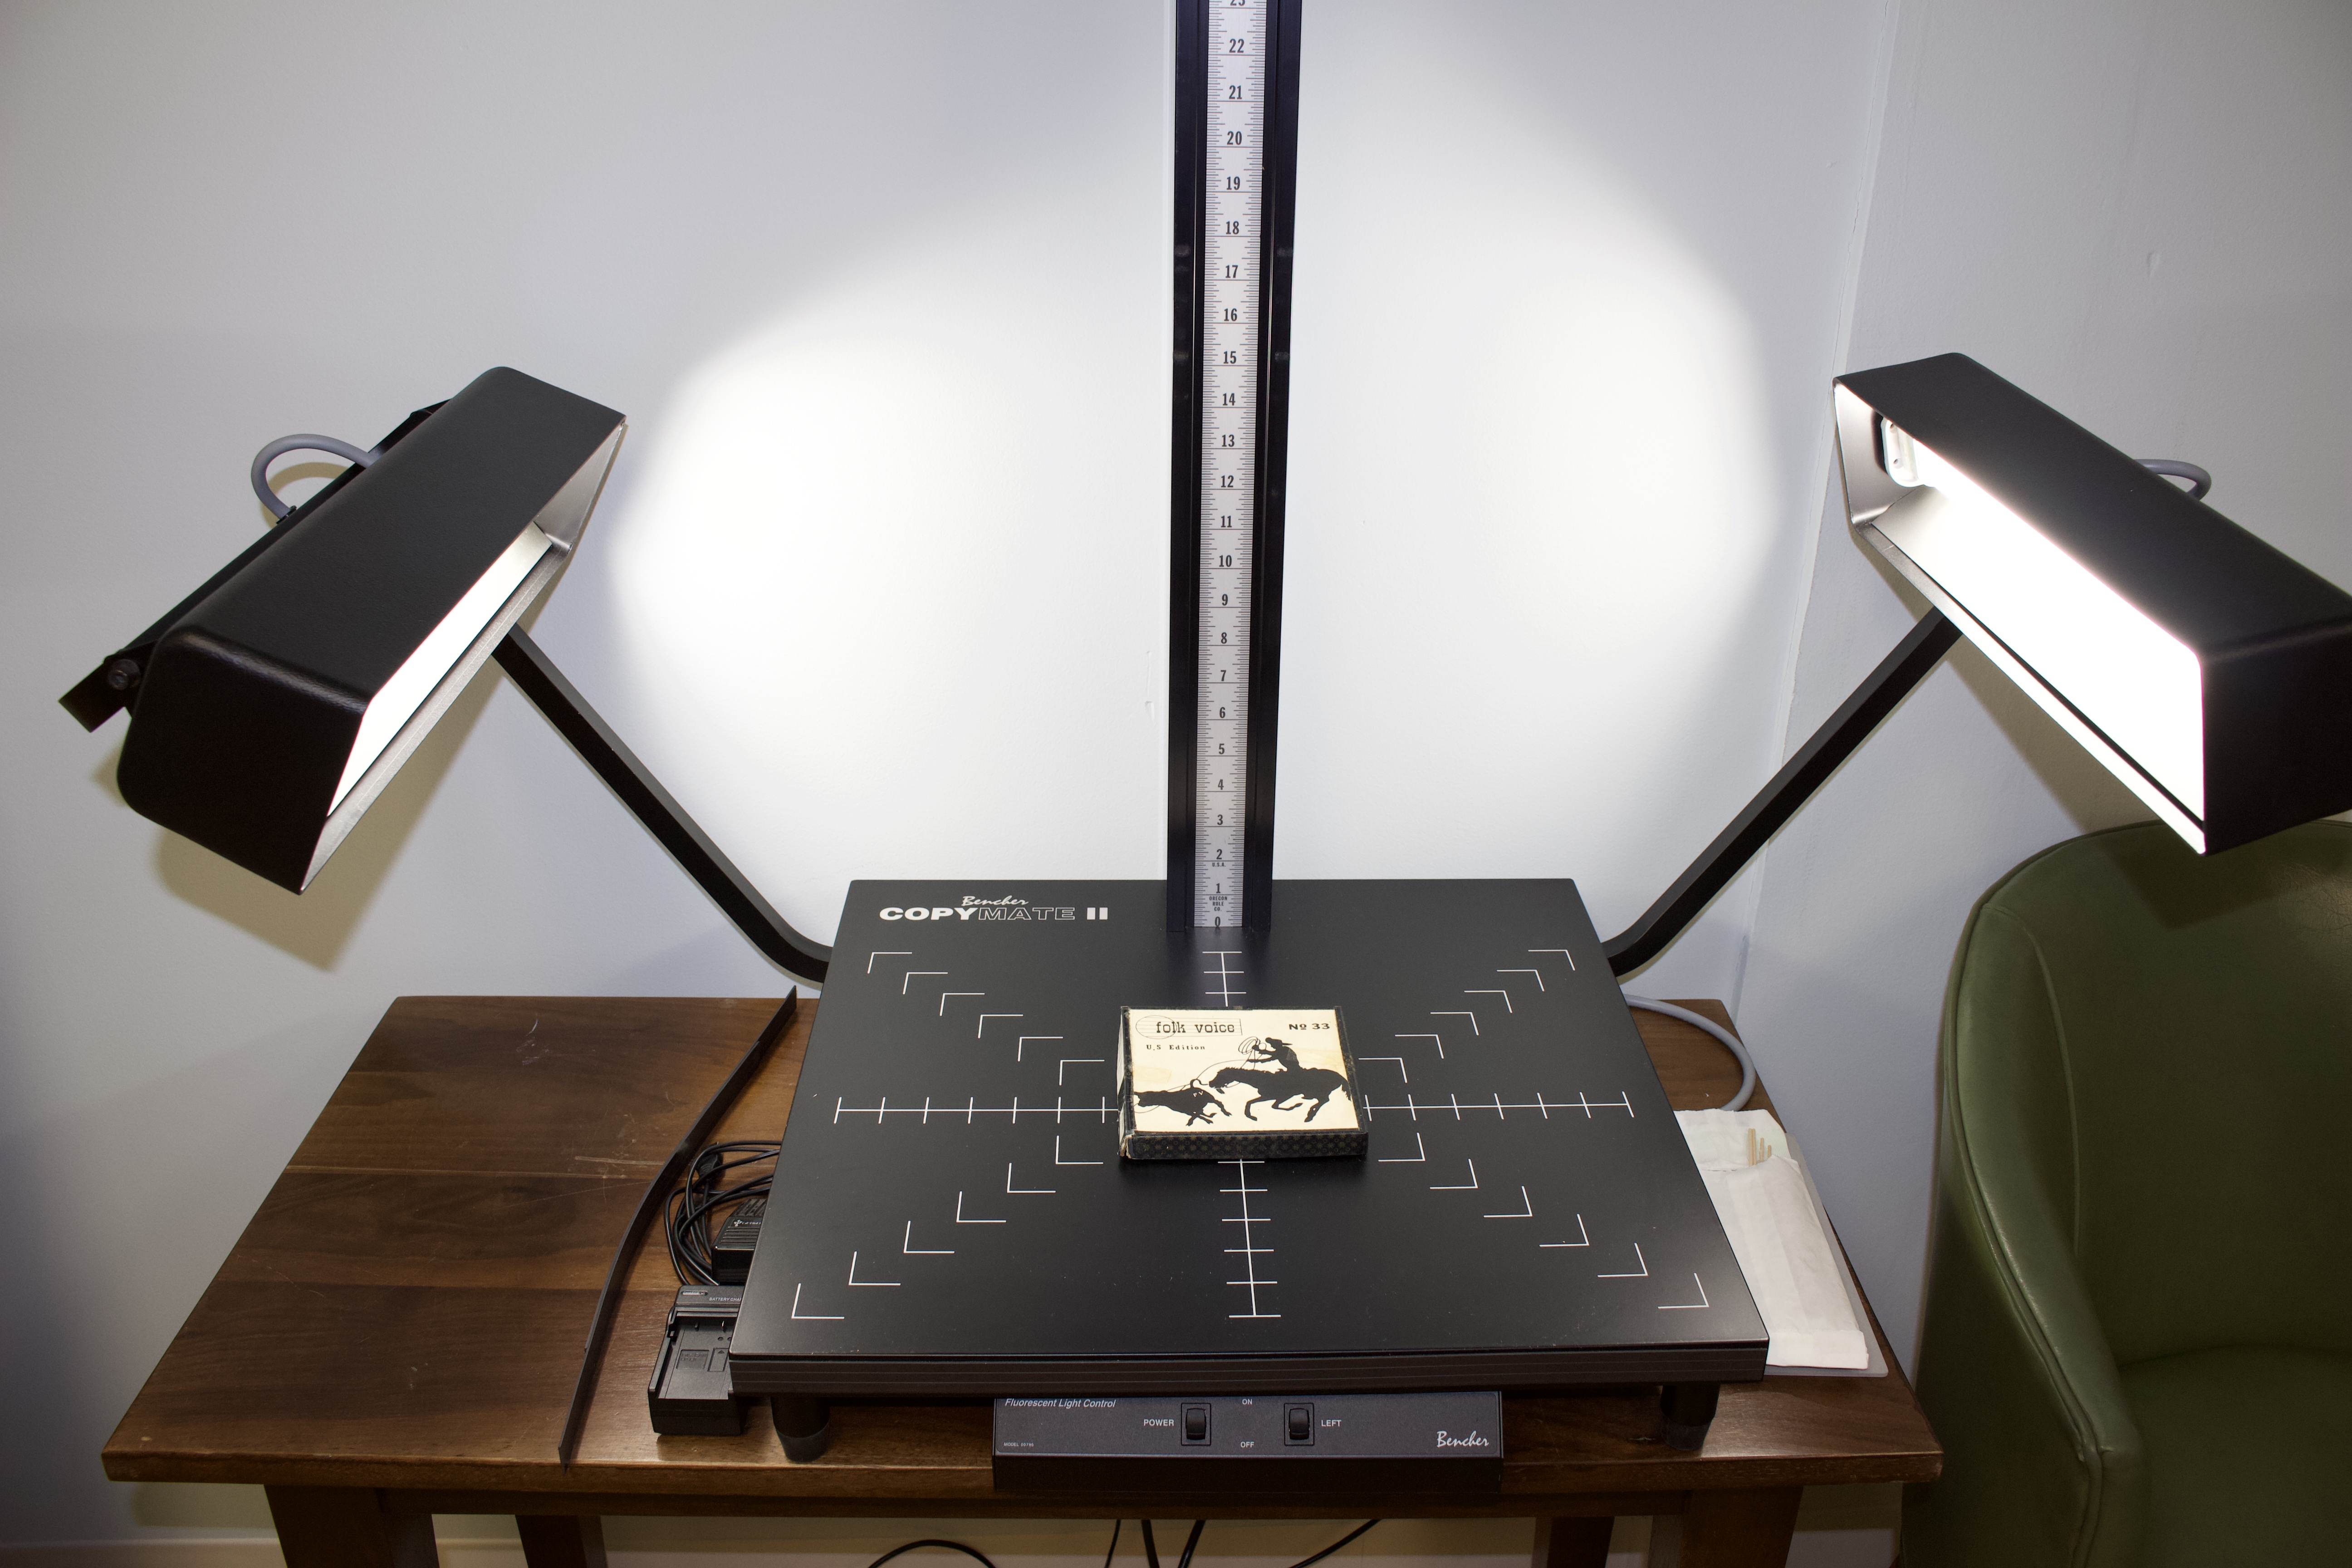 a photo stand with two lights projected onto an audiotape box